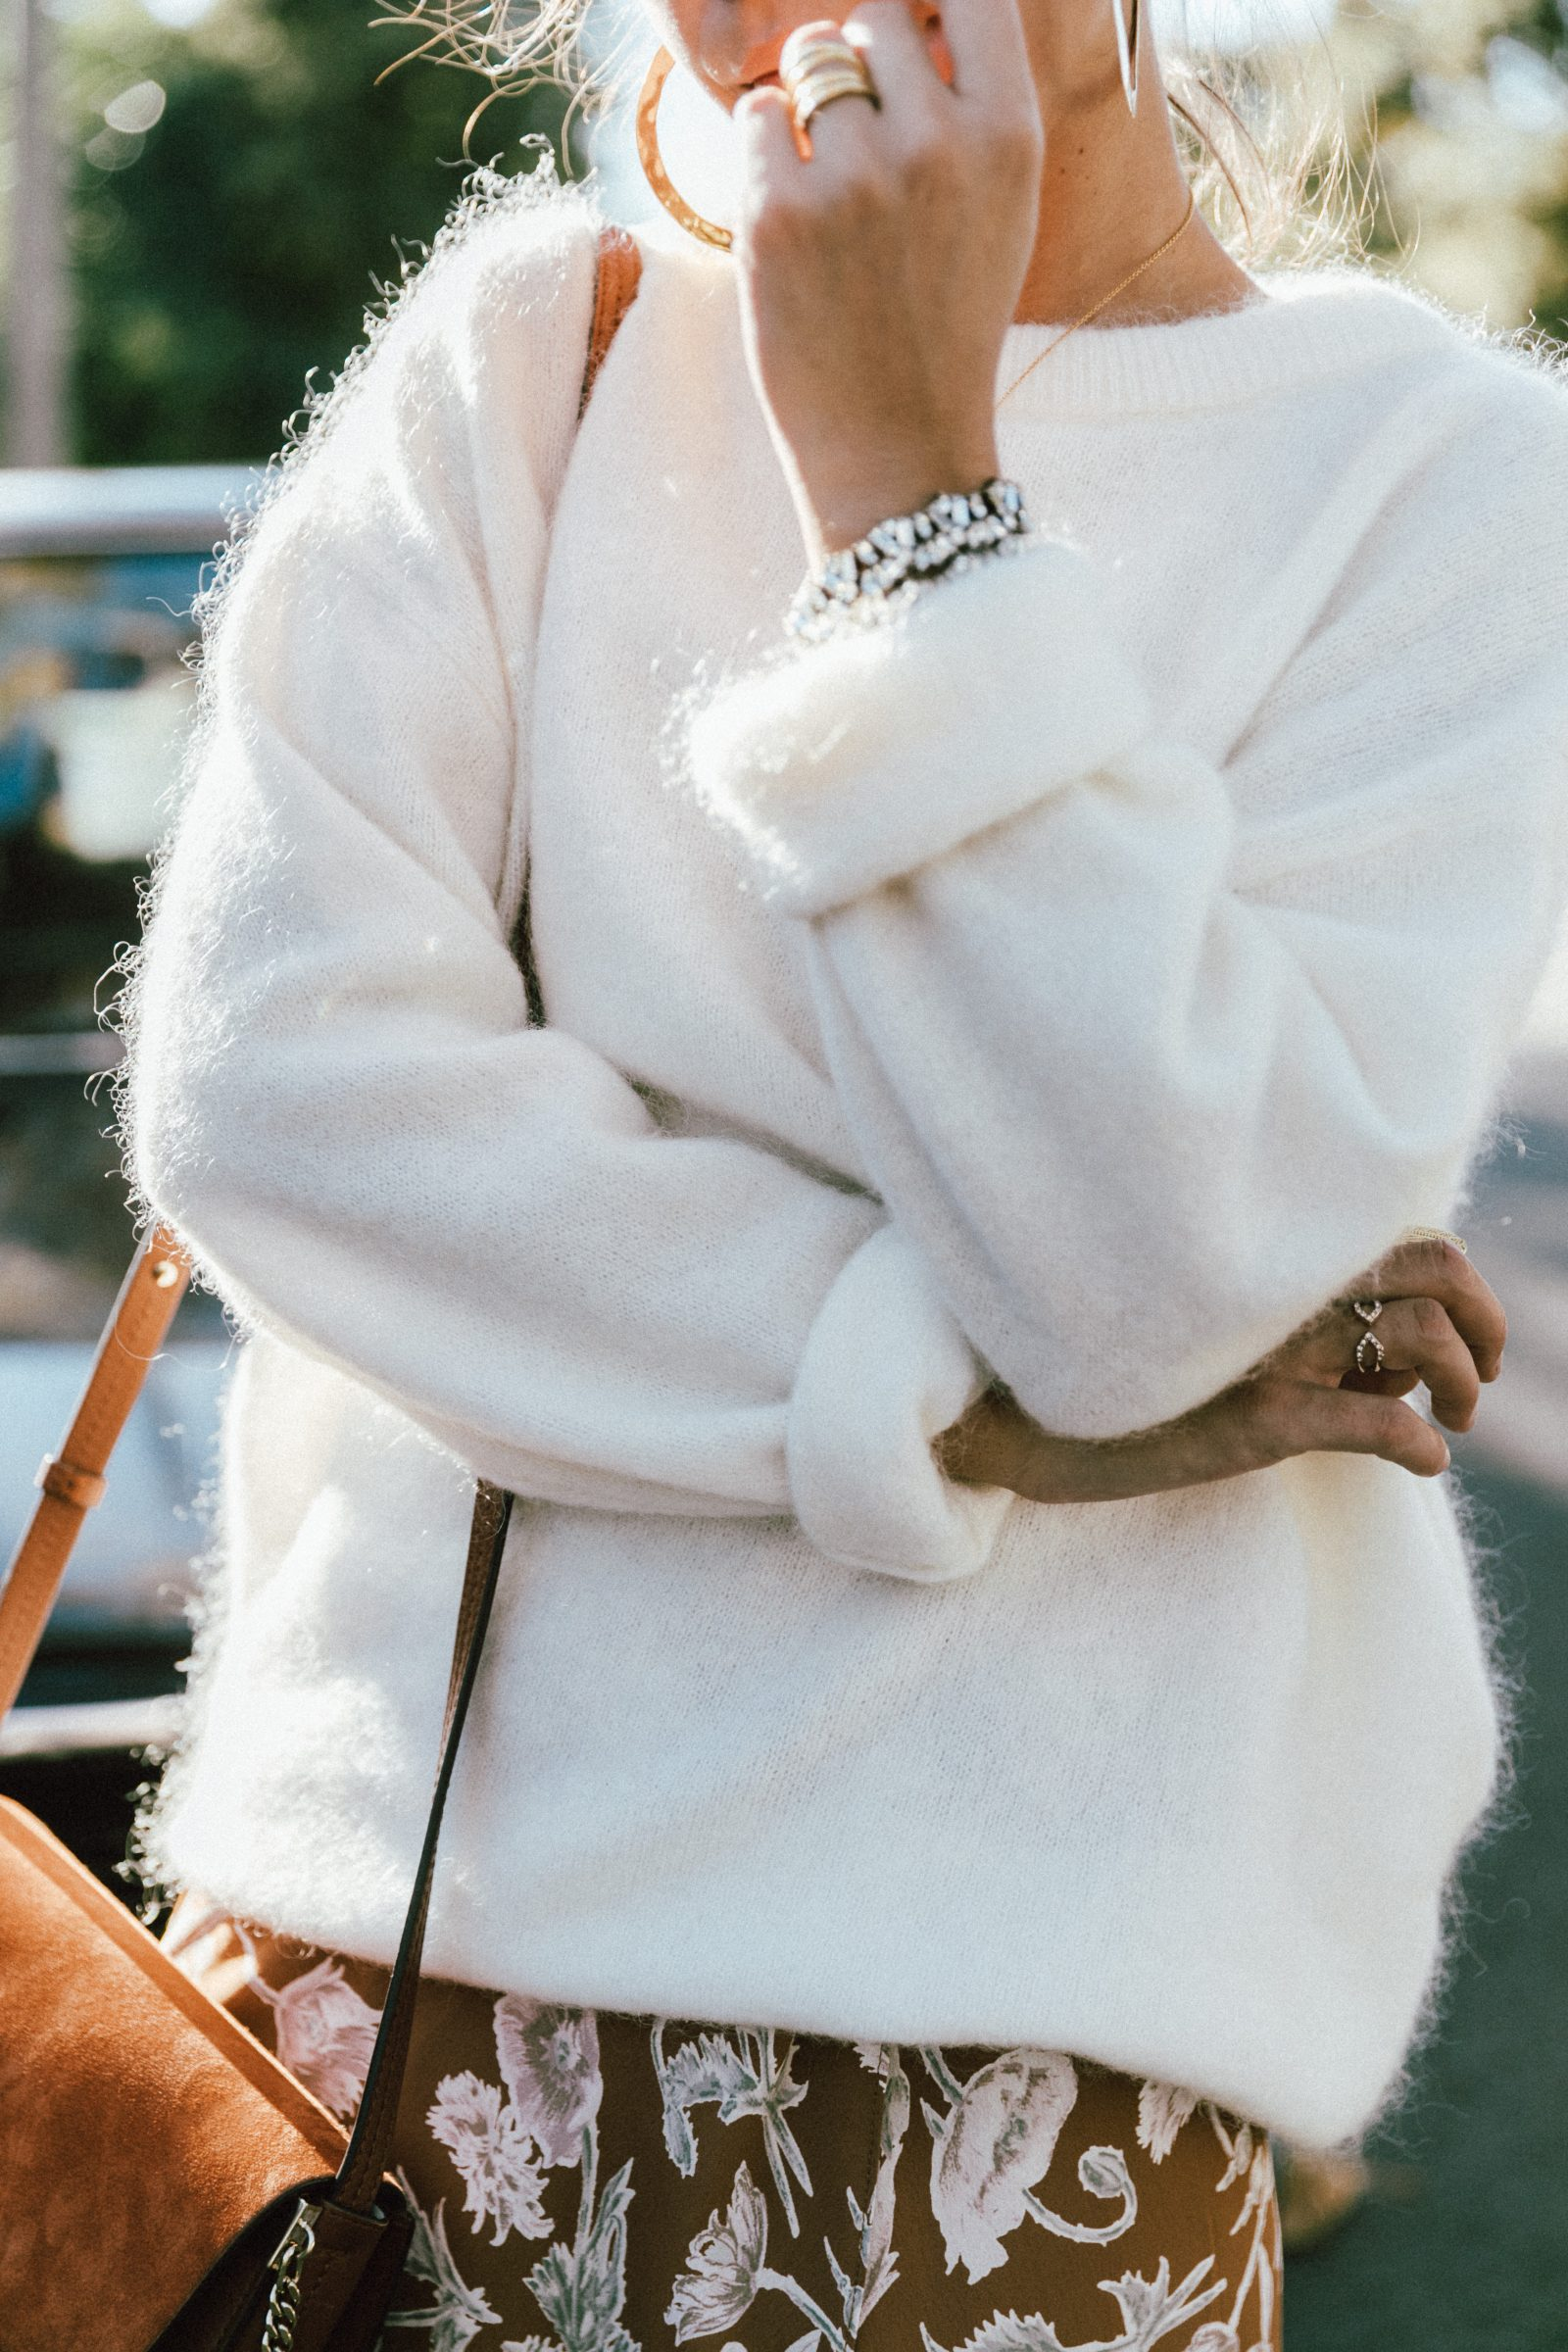 Vintage Winter Outfit Idea Style with Converse Shoes - Outfit Ideas HQ Winter vintage fashion ideas